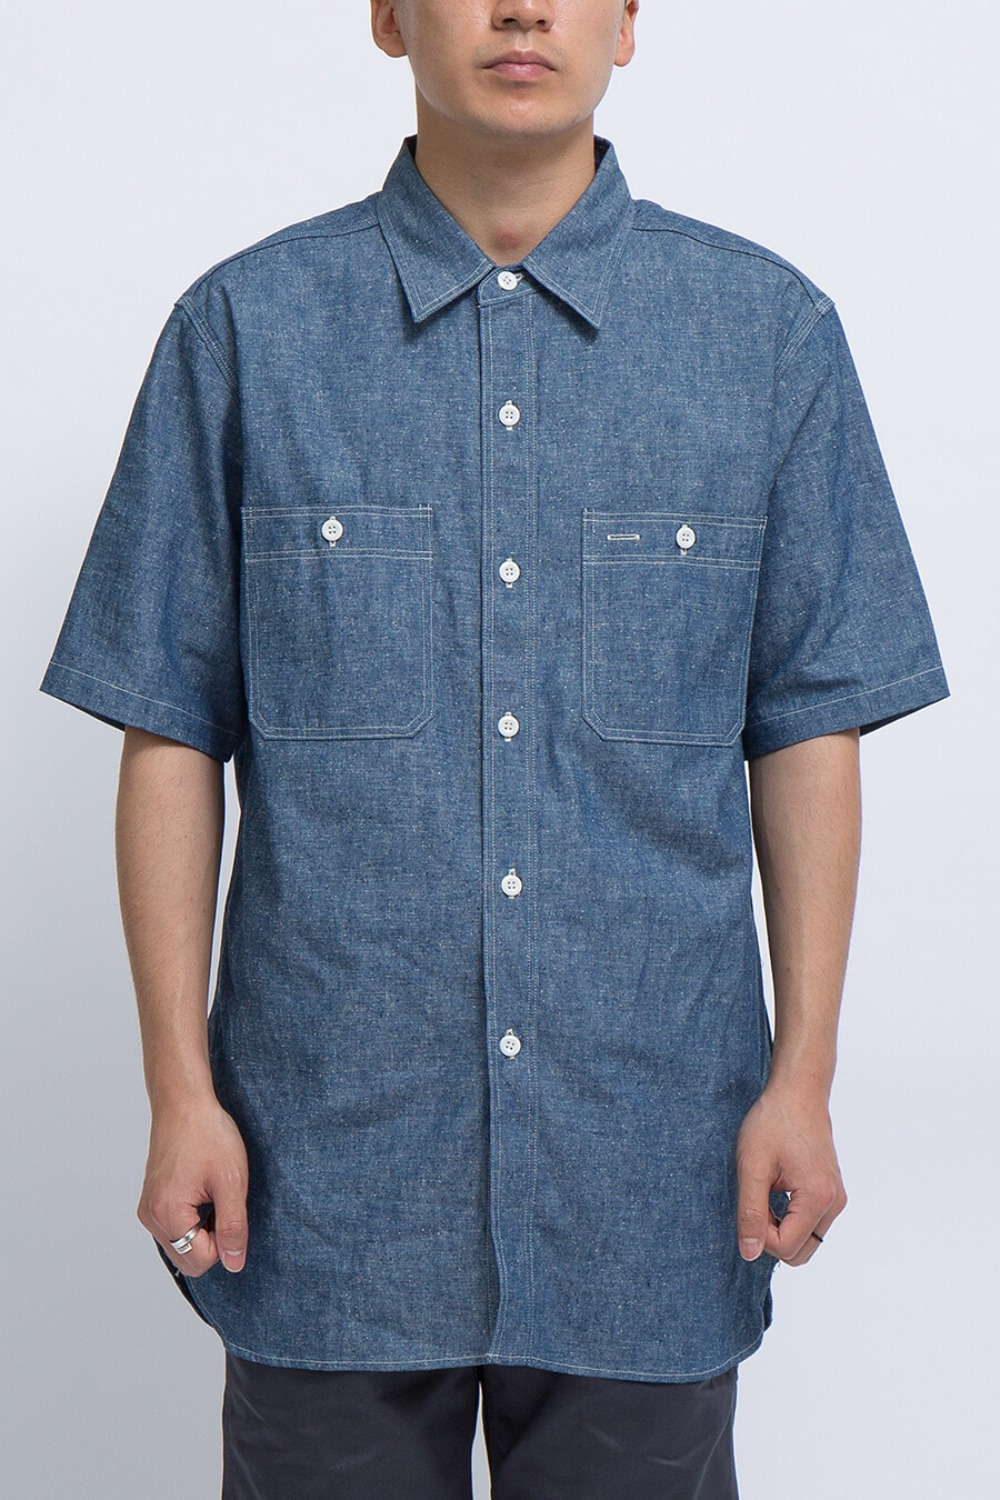 LOT 3080 S/S WORK SHIRTS CHAMBRAY NON WASH